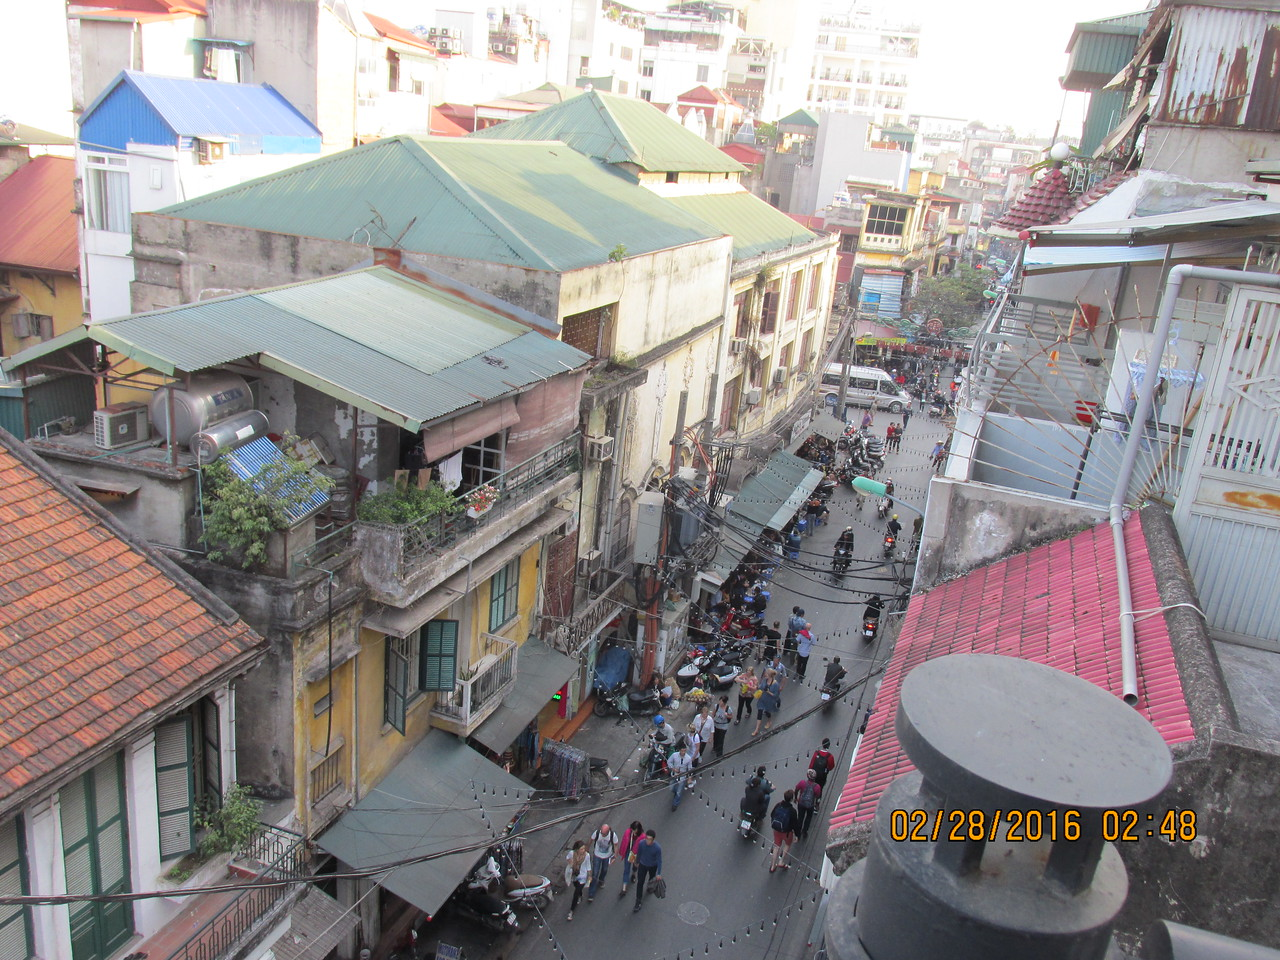 0034 - View from Balcony of Essence d'Orient Hotel overlooking Ta Hiem St in Old Quarter - Hanoi Vietnam - Date Correct but Time on Pic is Wrong